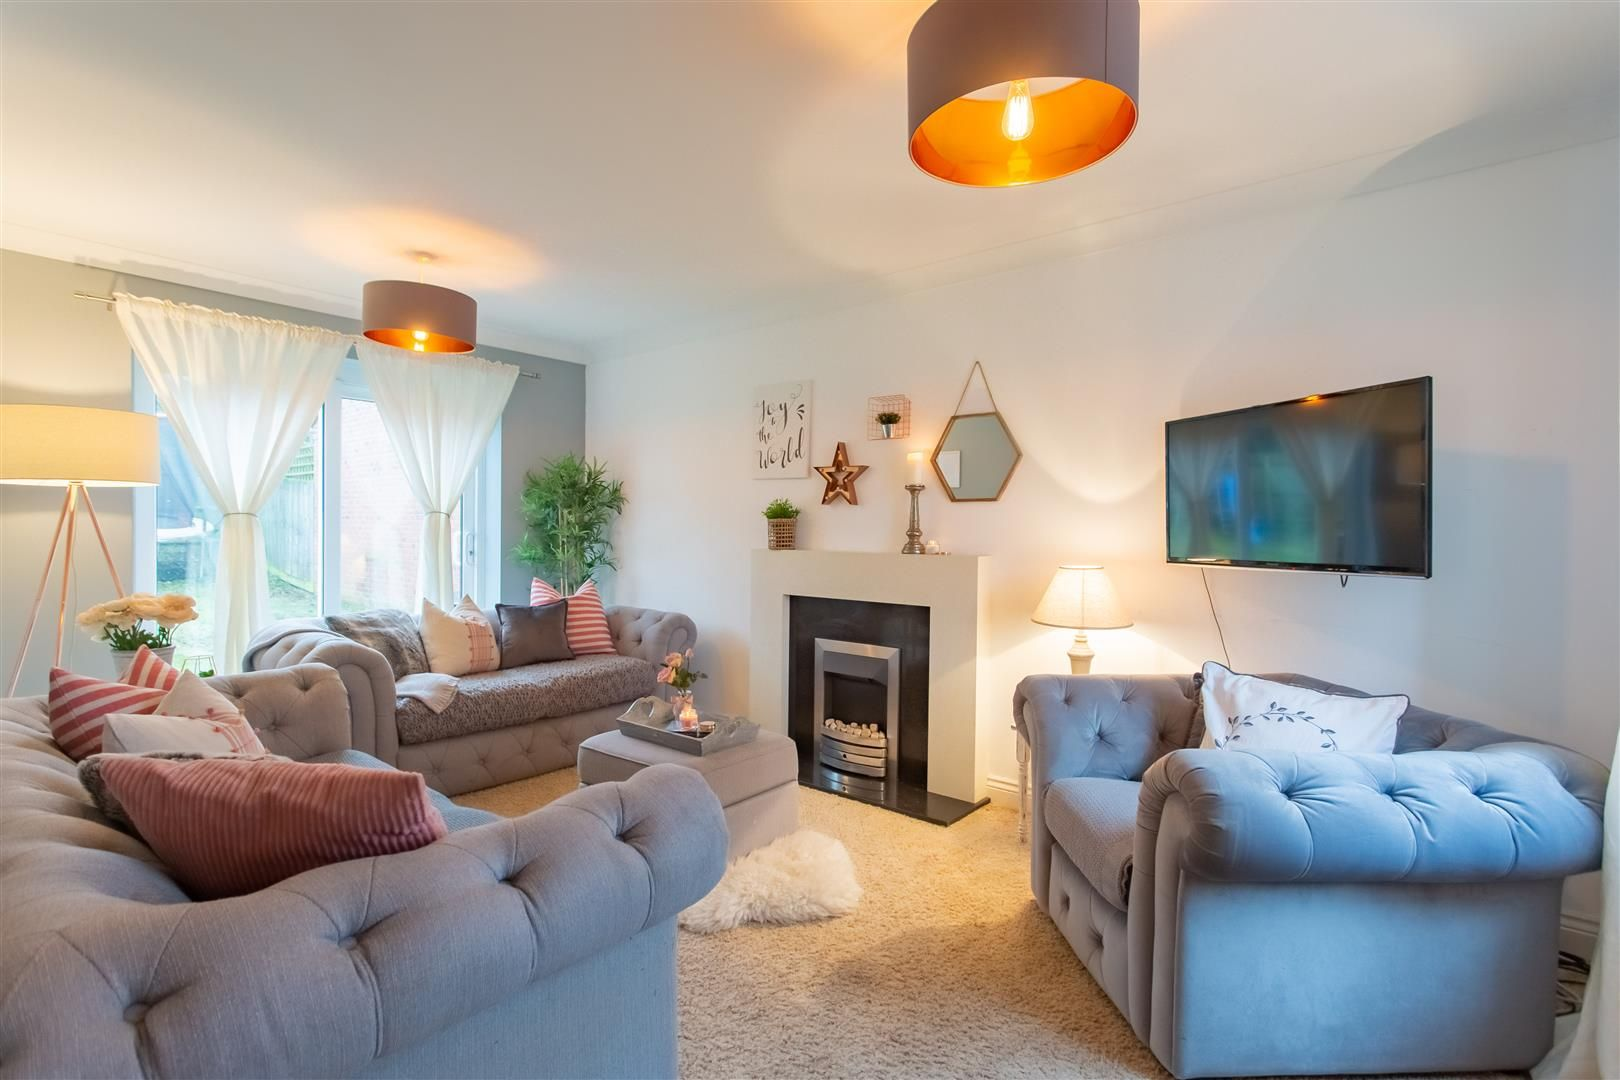 3 bed detached for sale in Hereford  - Property Image 3